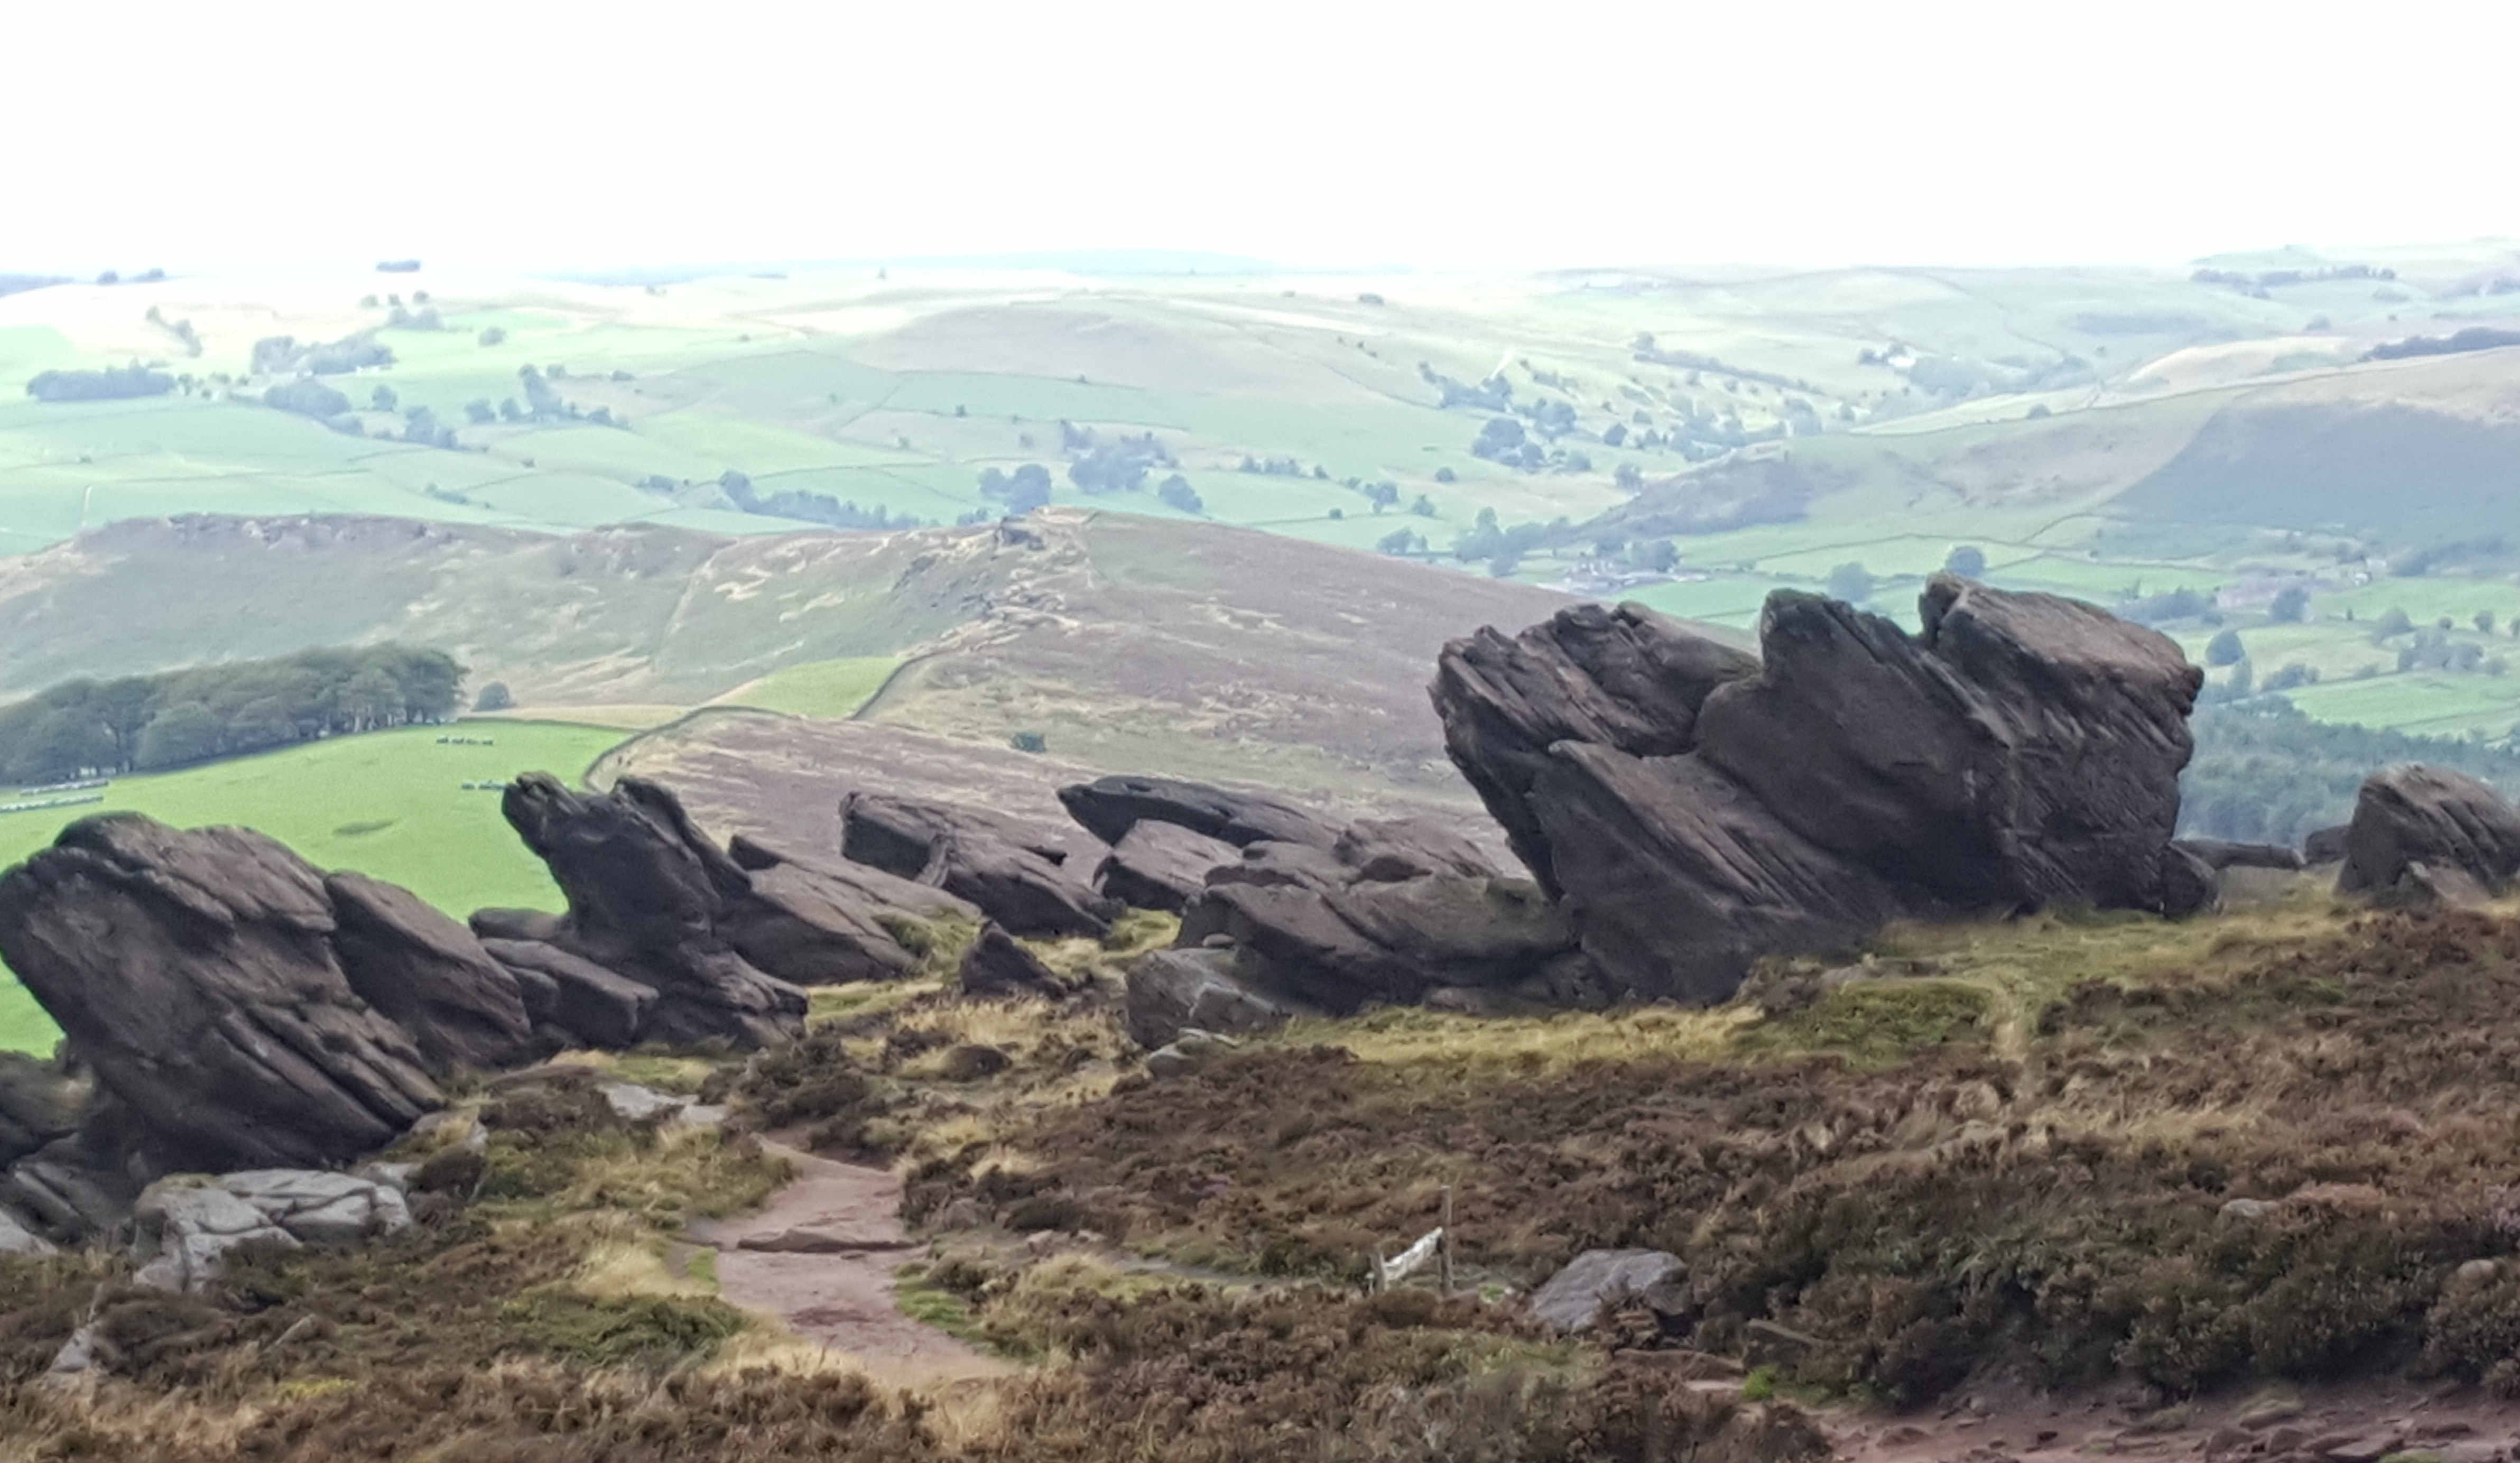 Camping VLOG – Ancient sites, The Roaches and Luds Church